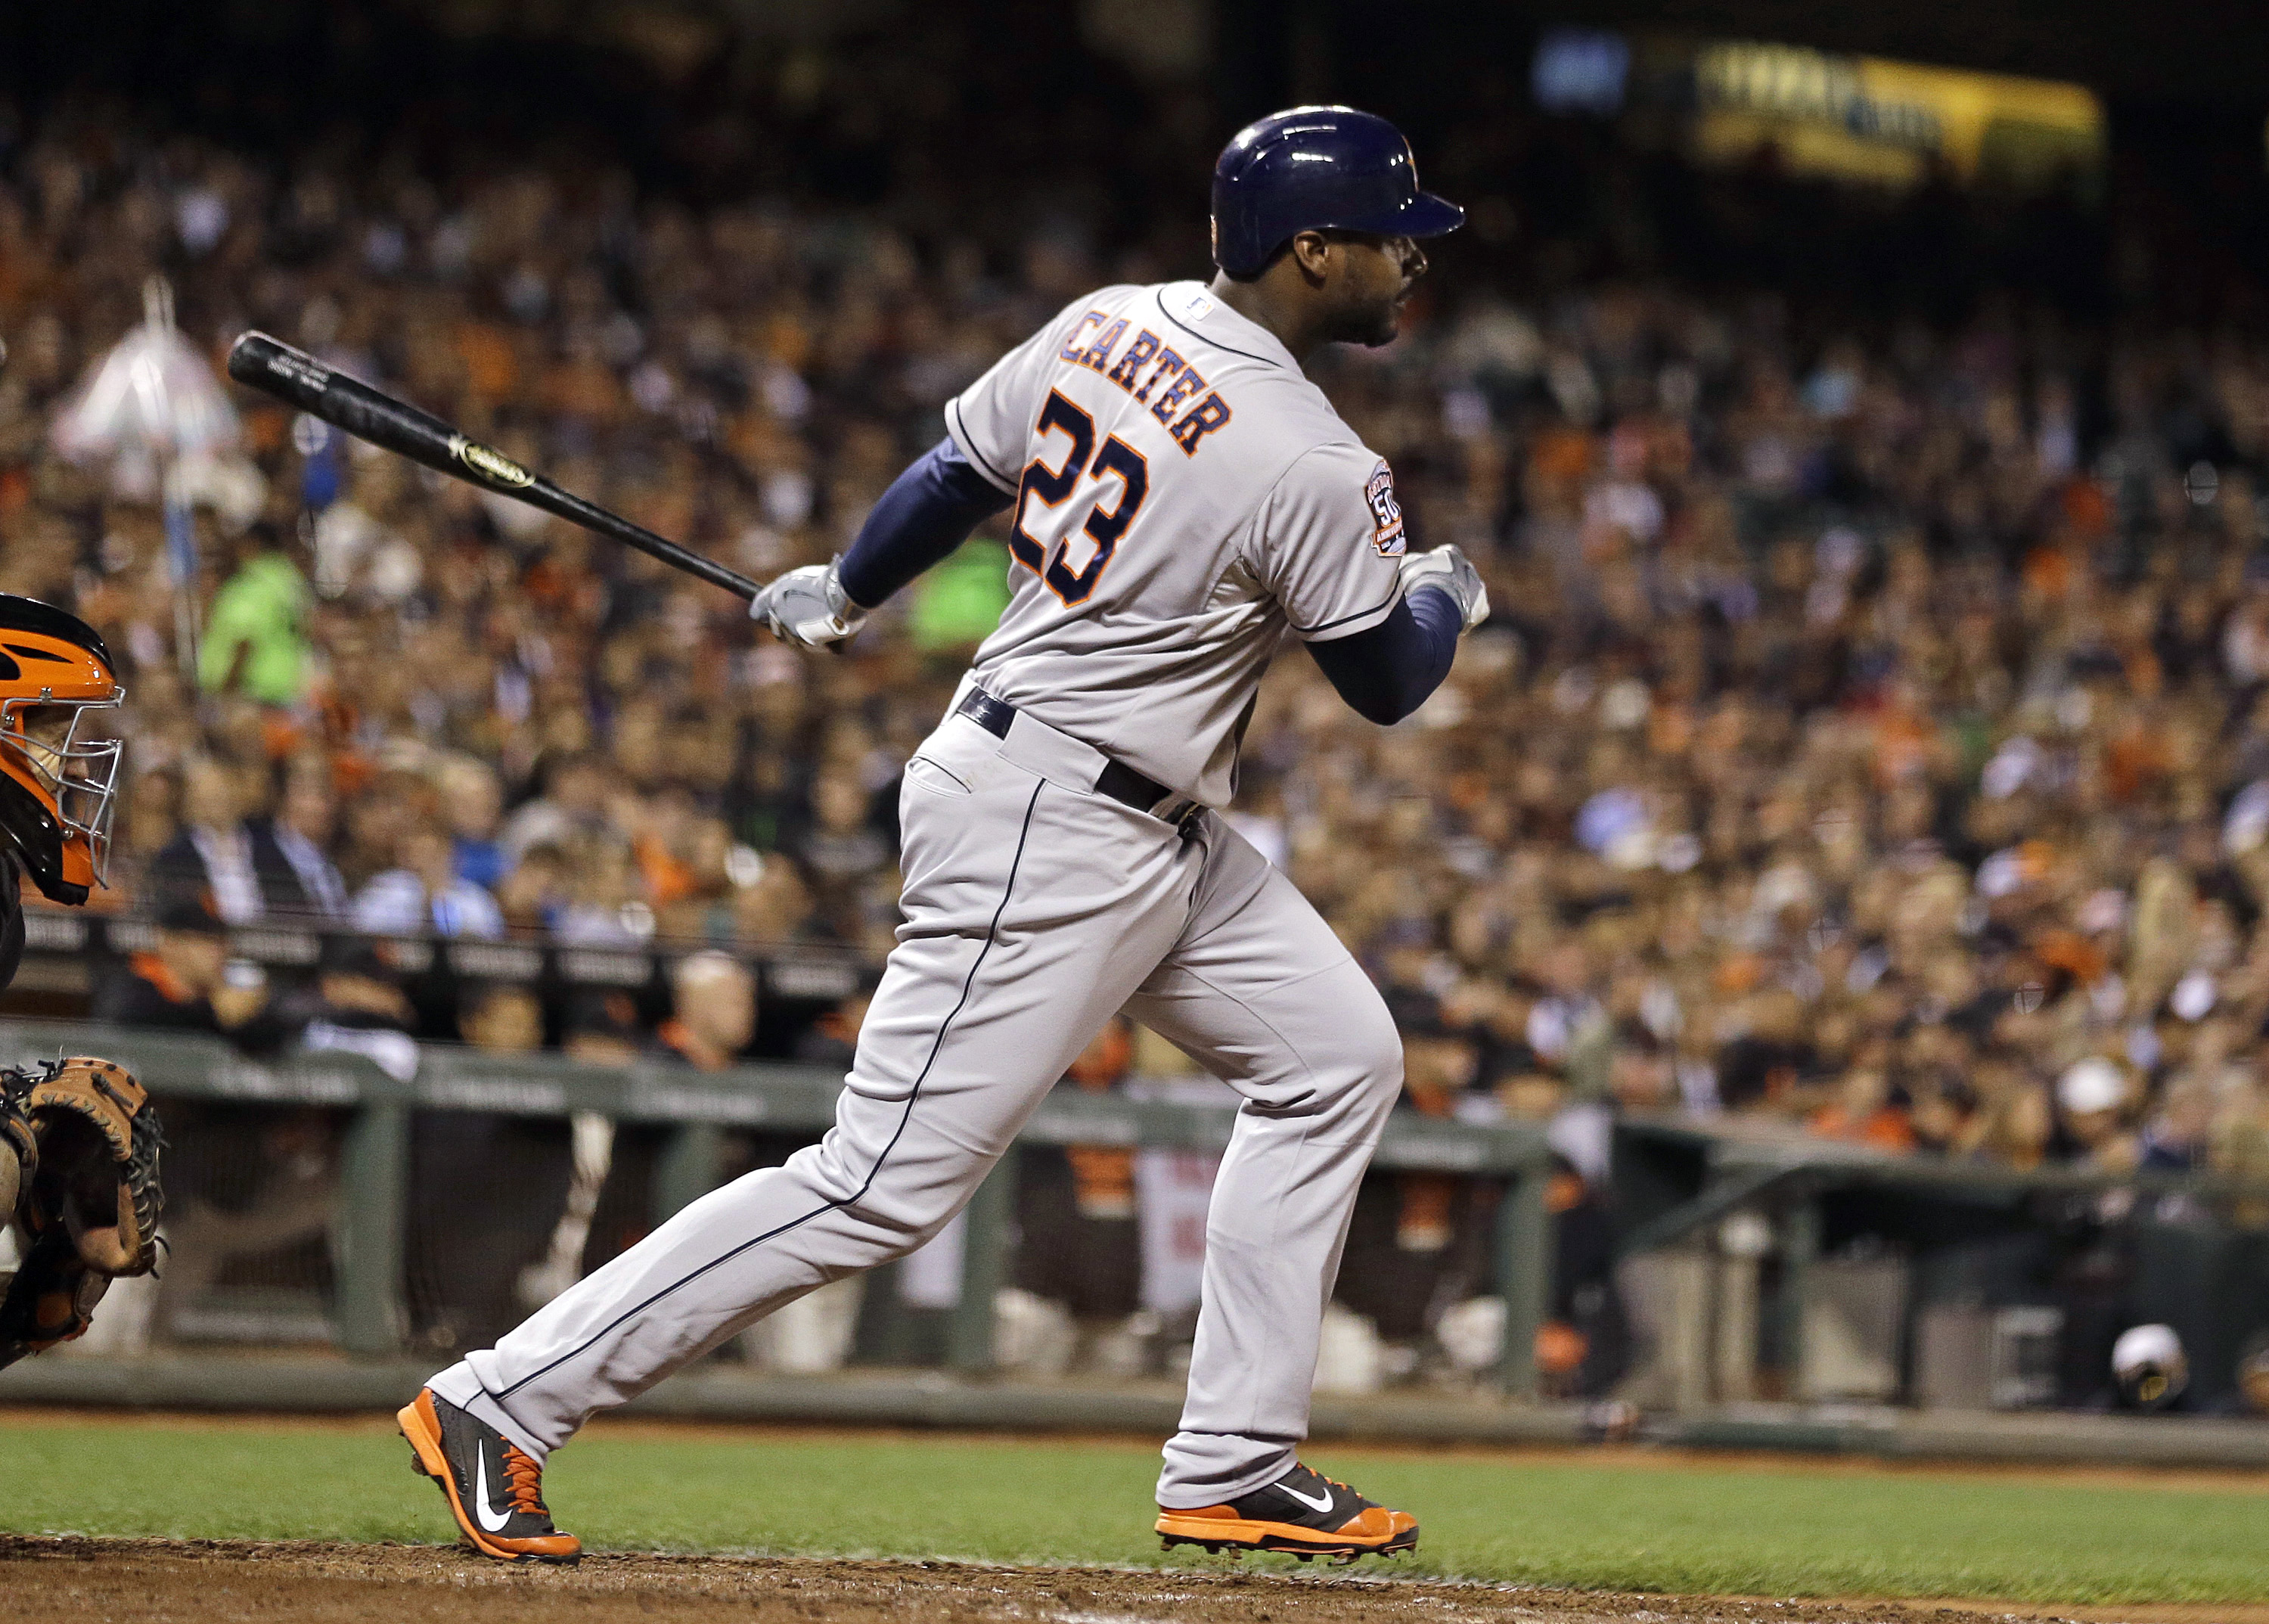 FILE - In this Aug. 11, 2015, file photo, Houston Astros' Chris Carter hits an RBI single off San Francisco Giants starting pitcher Madison Bumgarner in the seventh inning of their baseball game in San Francisco. Carter was among dozens of players who bec